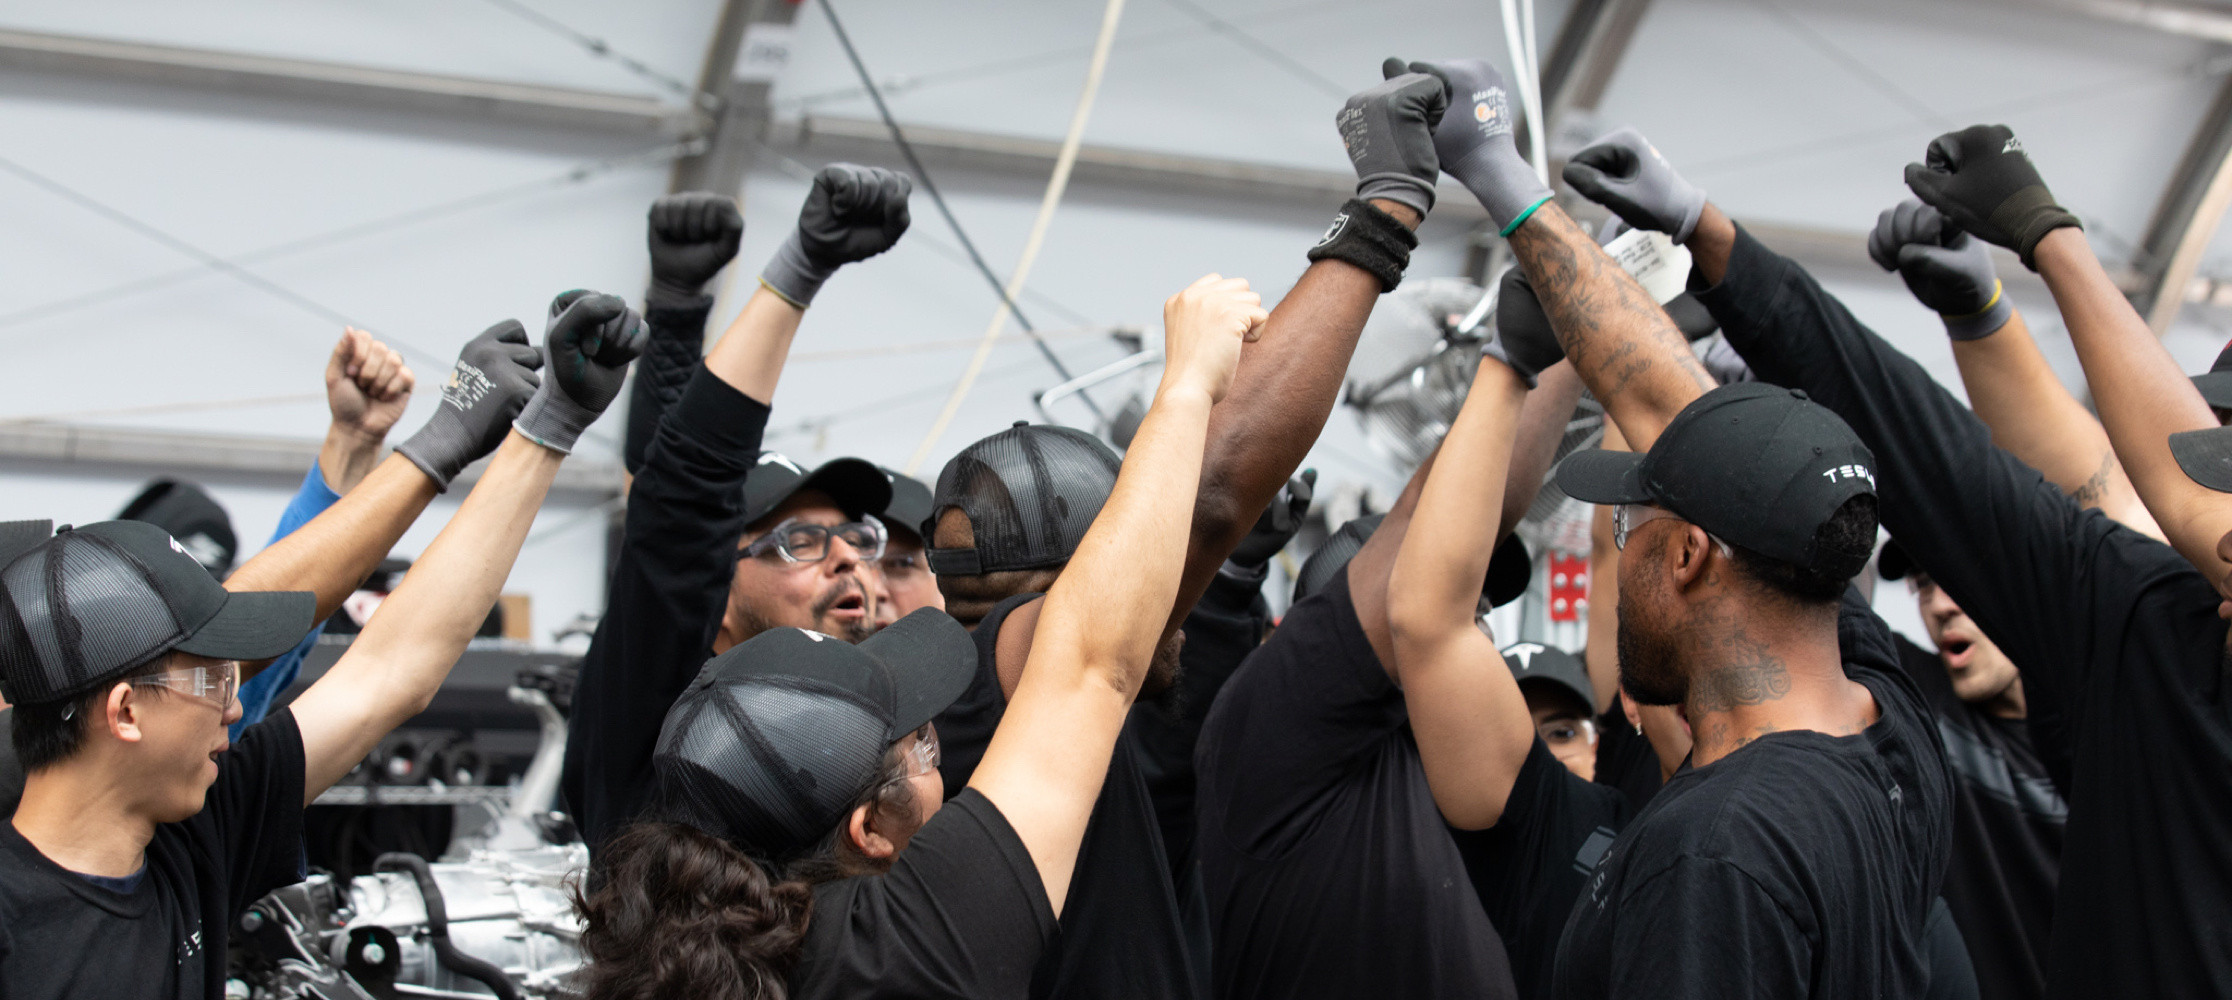 Tesla employees uniting at the factory.